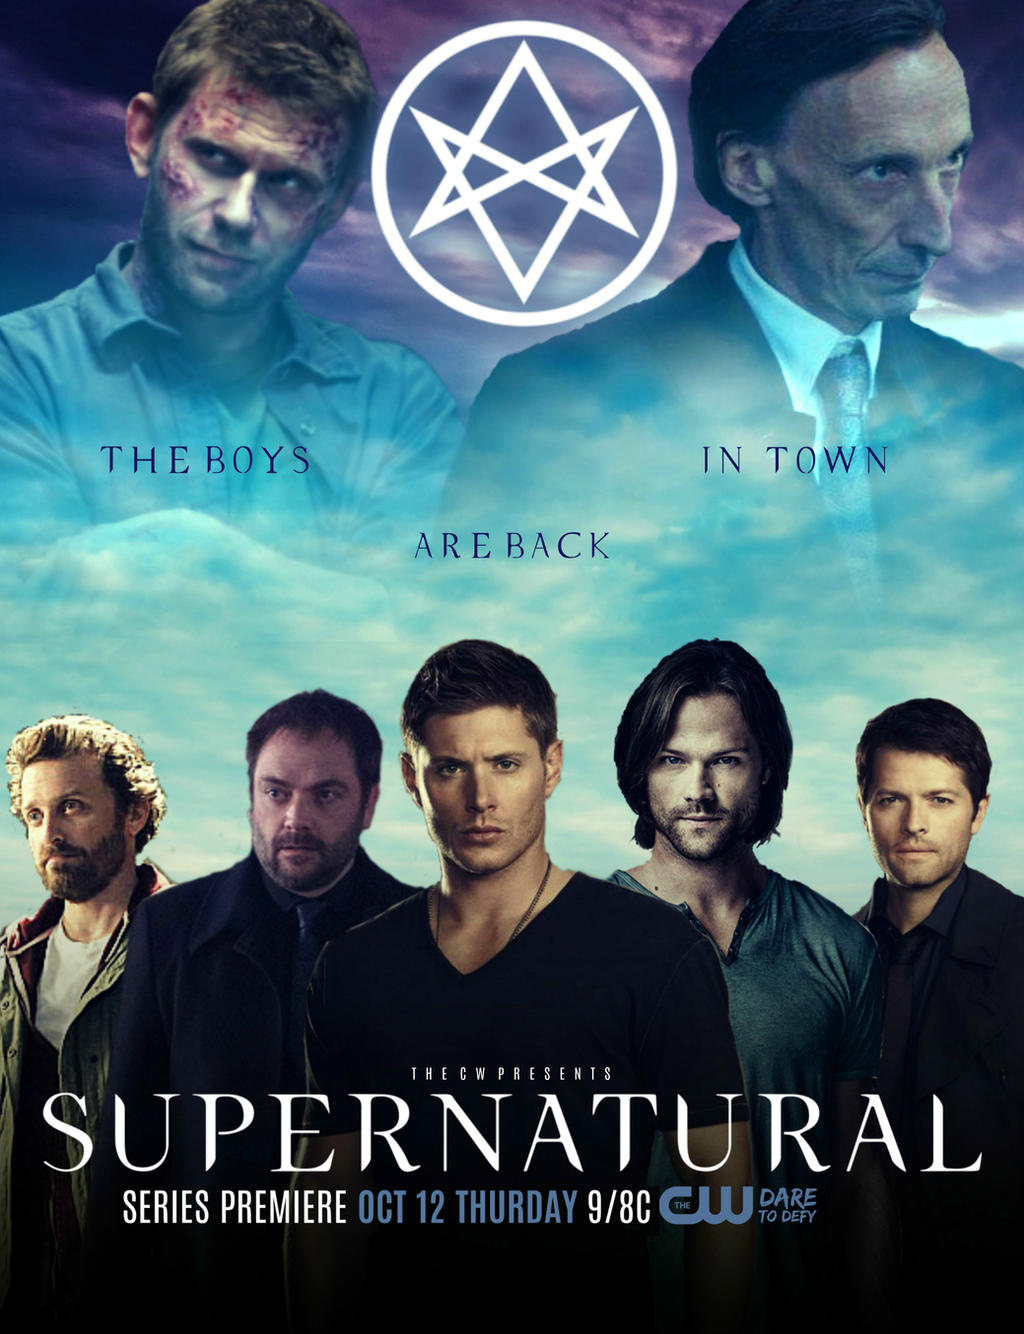 Supernatural - Season 12 Poster by NoPlanes on DeviantArt